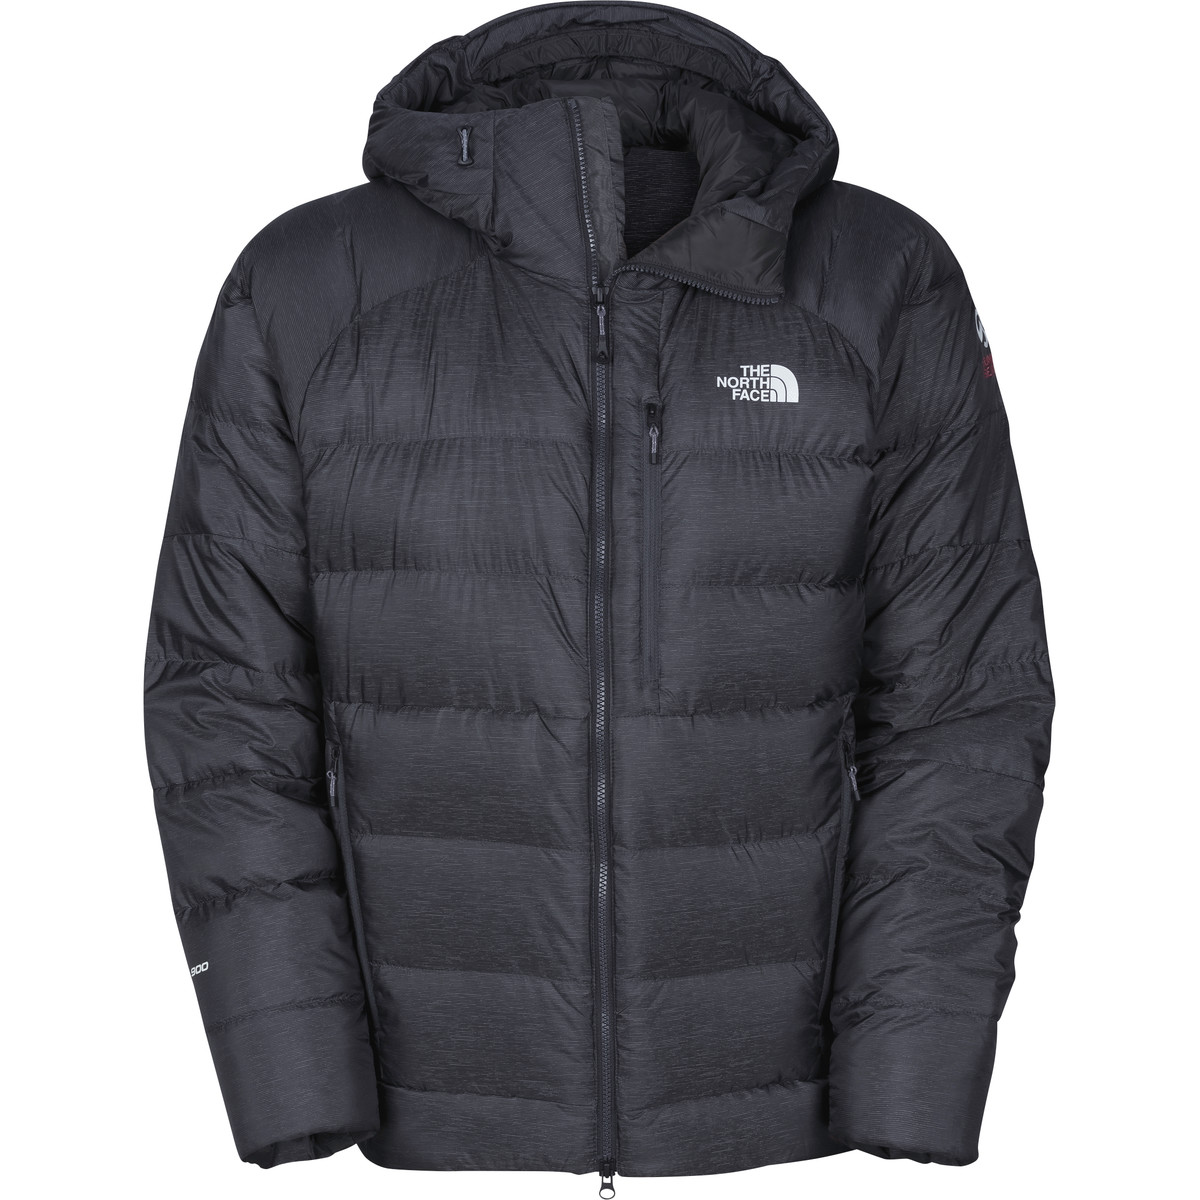 The North Face Titan Hooded Jacket